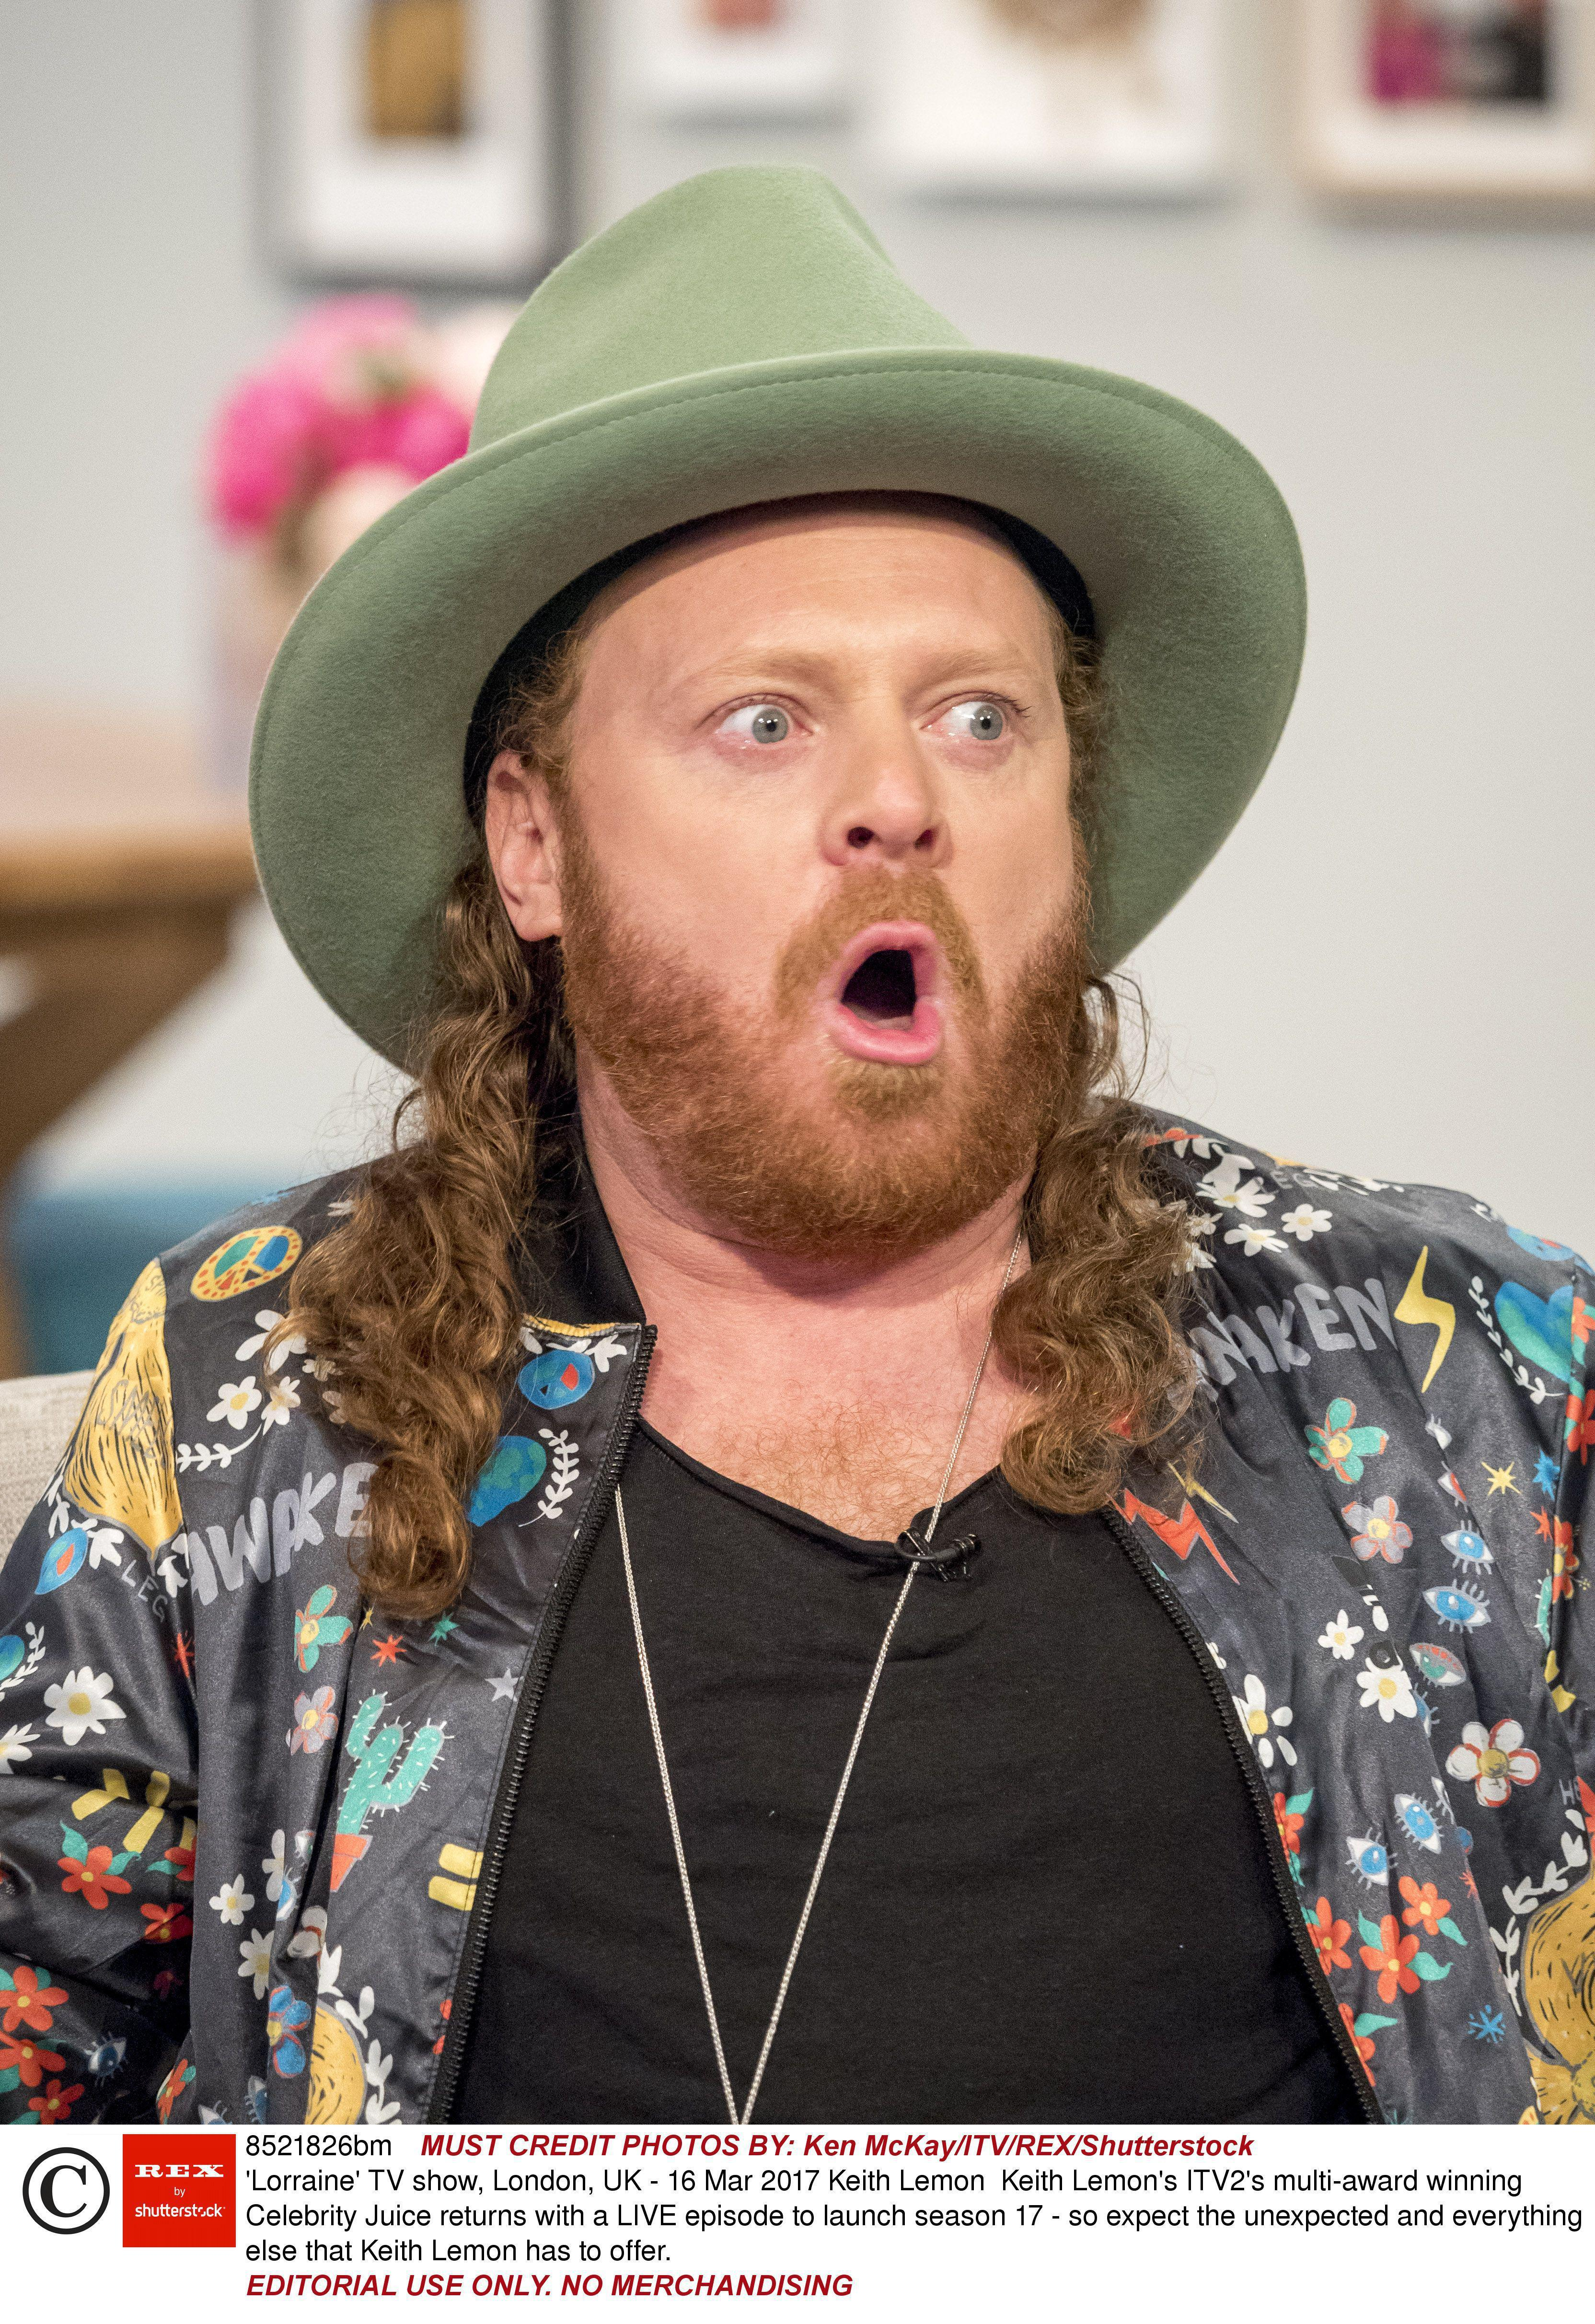 Who is Keith Lemon, what is the Celebrity Juice and Through The Keyhole host's real name and is he married?